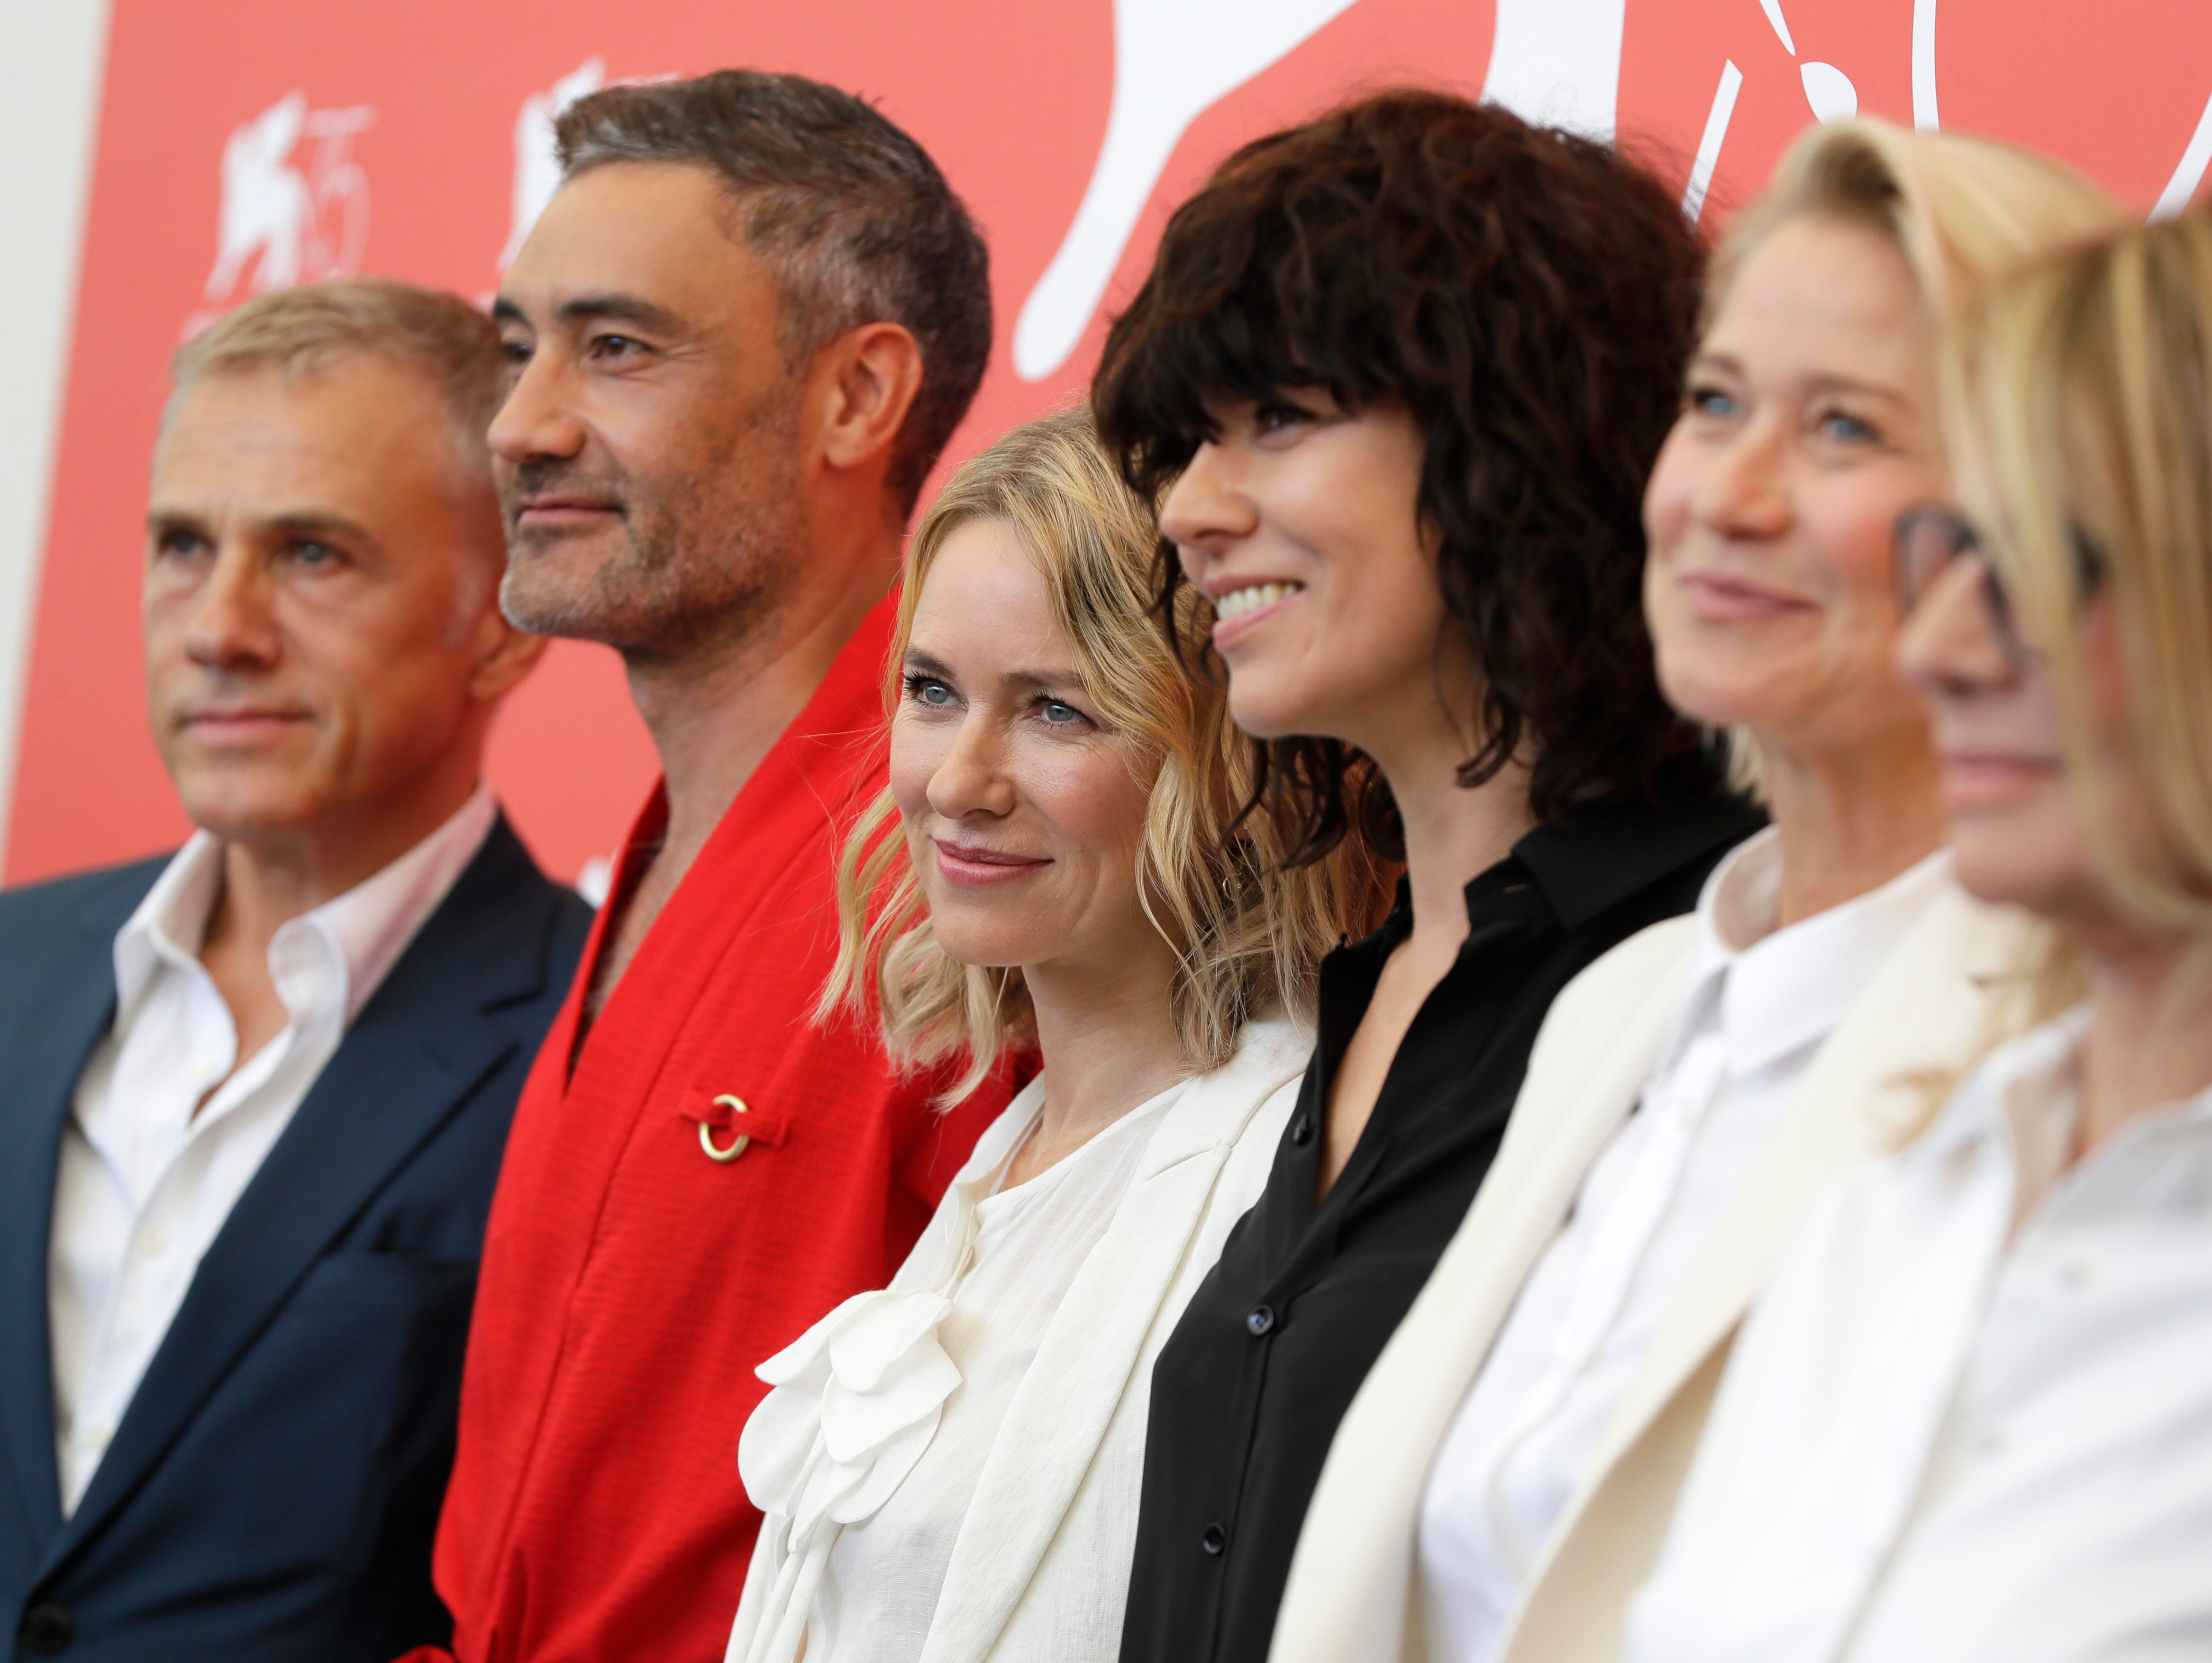 Jury members Christoph Waltz, from left, Taika Waititi, Naomi Watts, Malgorzata Szumowska, Trine Dyrholm and Nicole Garcia pose for photographers at the photo call for the Jury at the 75th edition of the Venice Film Festival in Venice, Wednesday, Aug. 29, 2018. (AP Photo/Kirsty Wigglesworth)